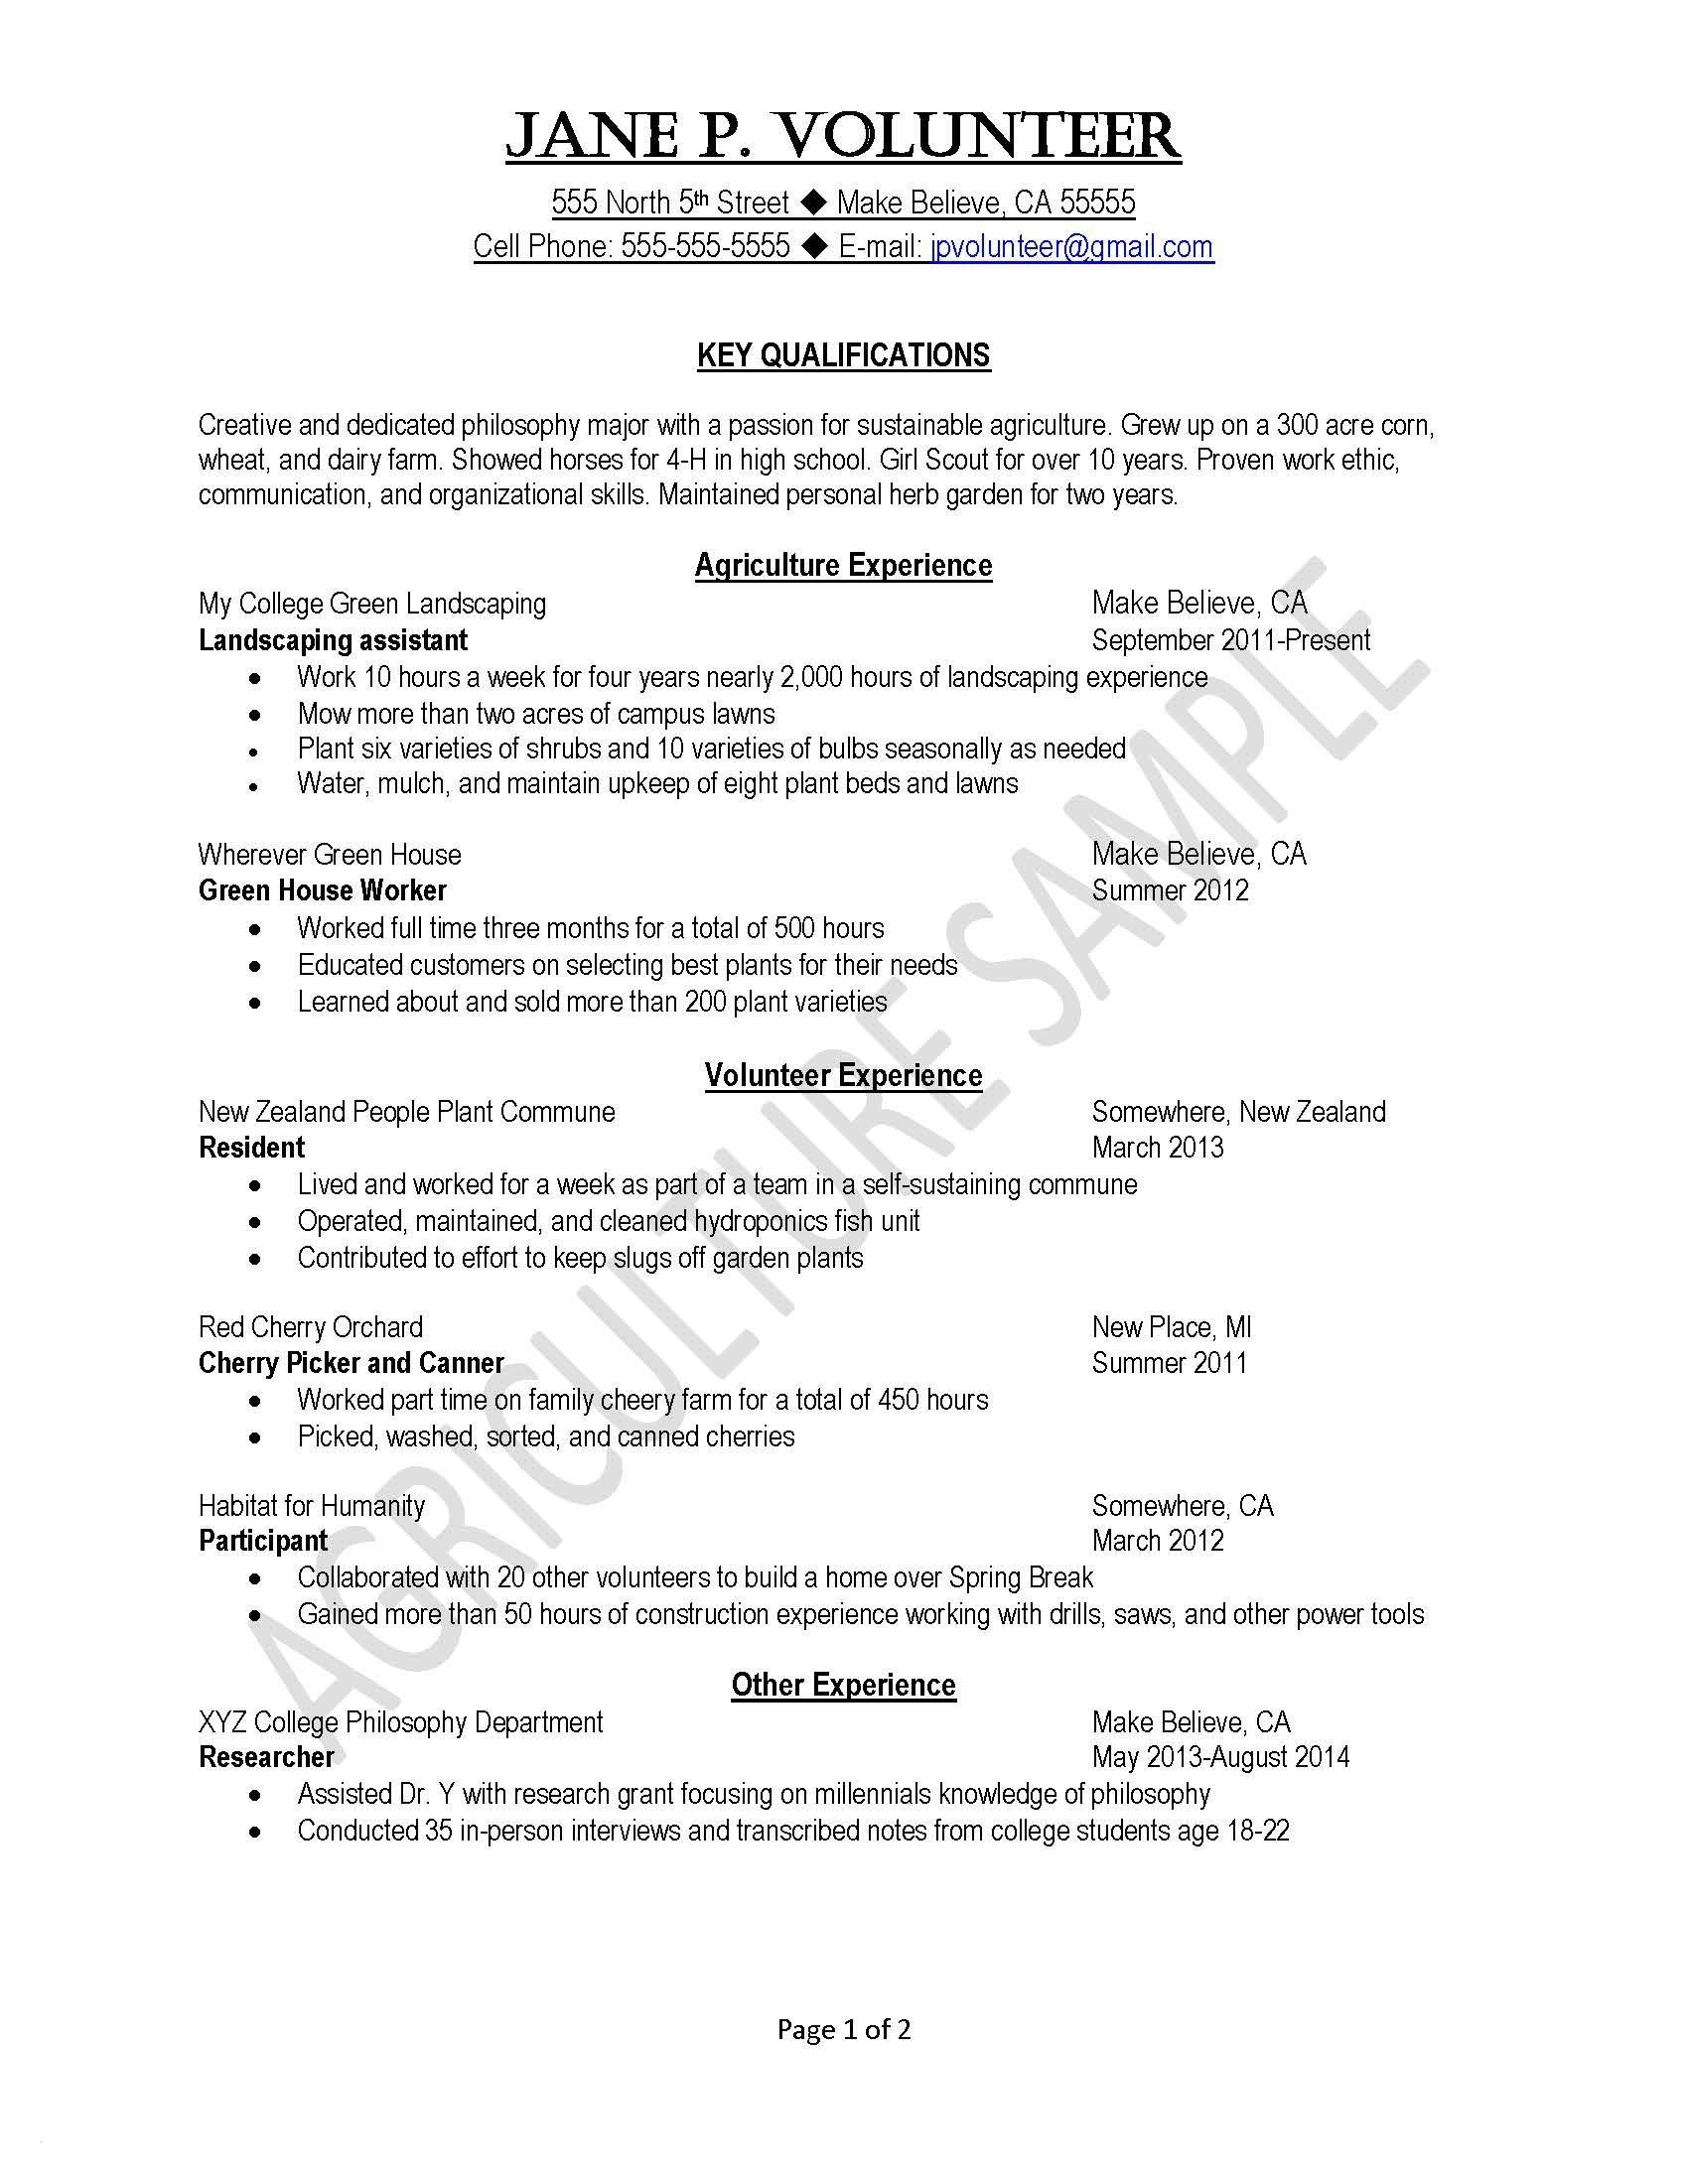 Resume Template for Undergraduate Student - Resume Templates for College Applications Awesome Awesome Sample